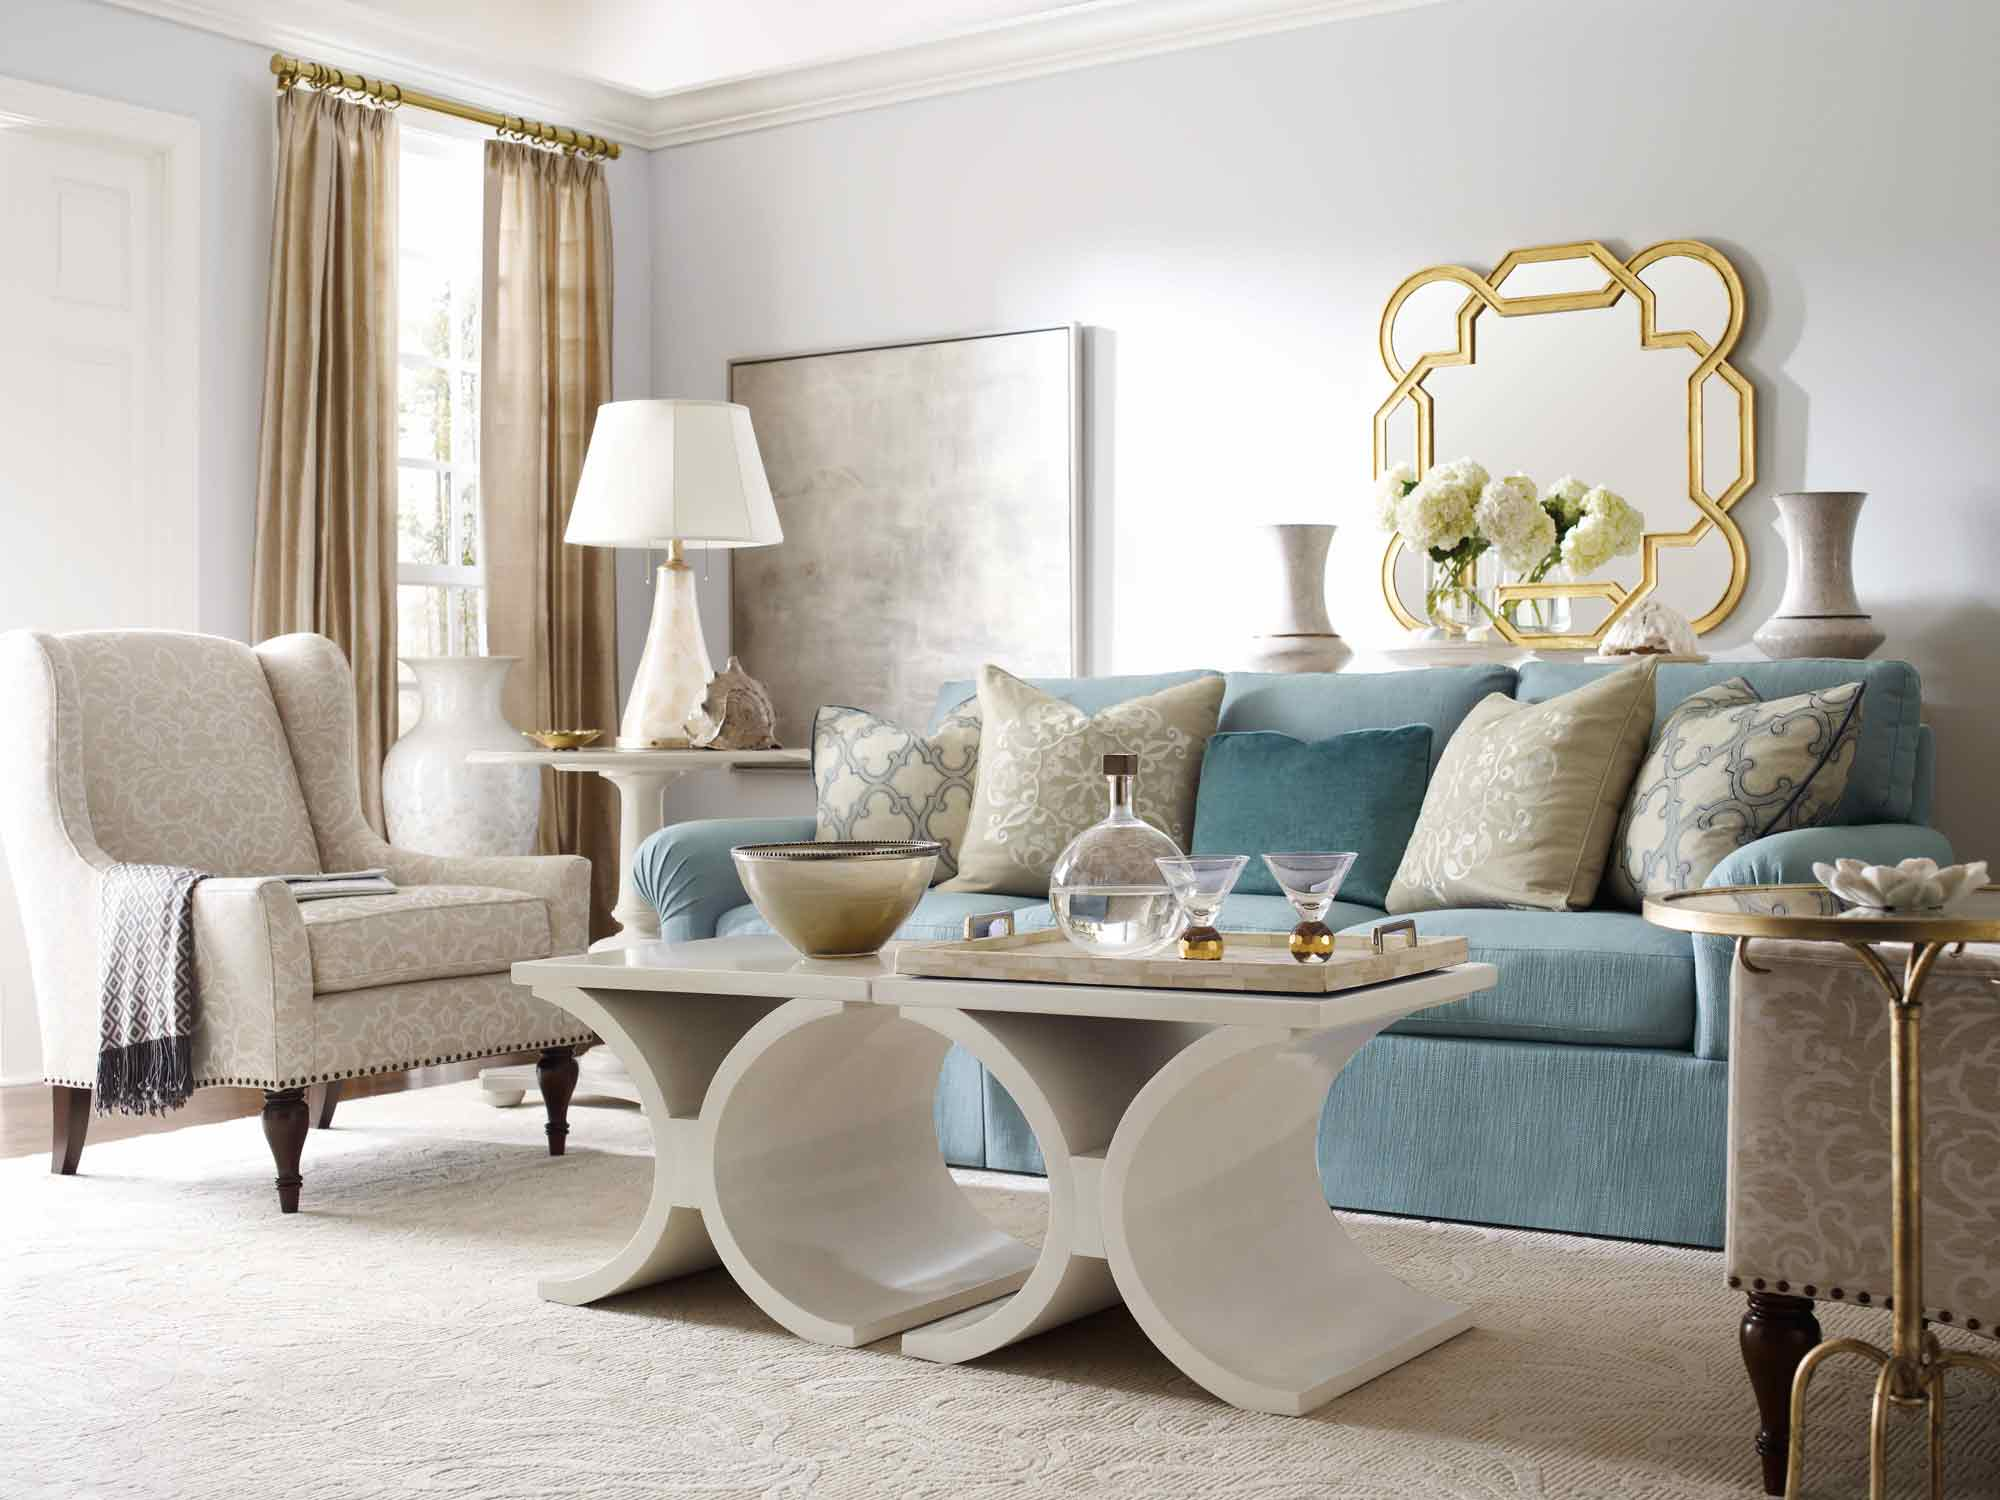 Interior design by tiffany for Makeup by tiffany d living room